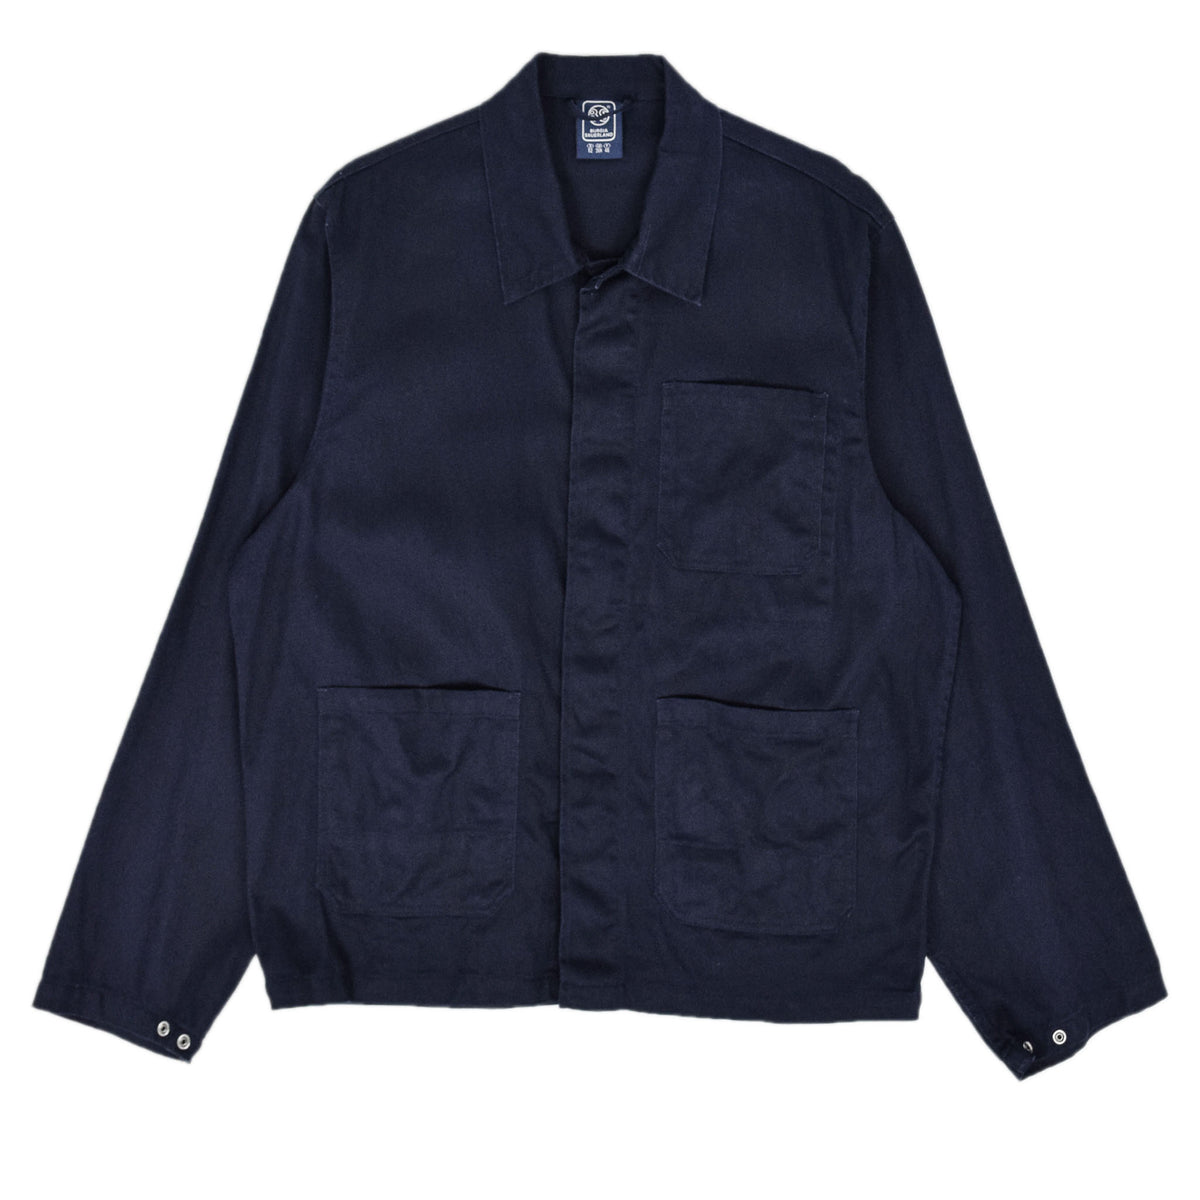 Vintage Navy Blue French Style Worker Sanforized Cotton Chore Jacket L / XL front